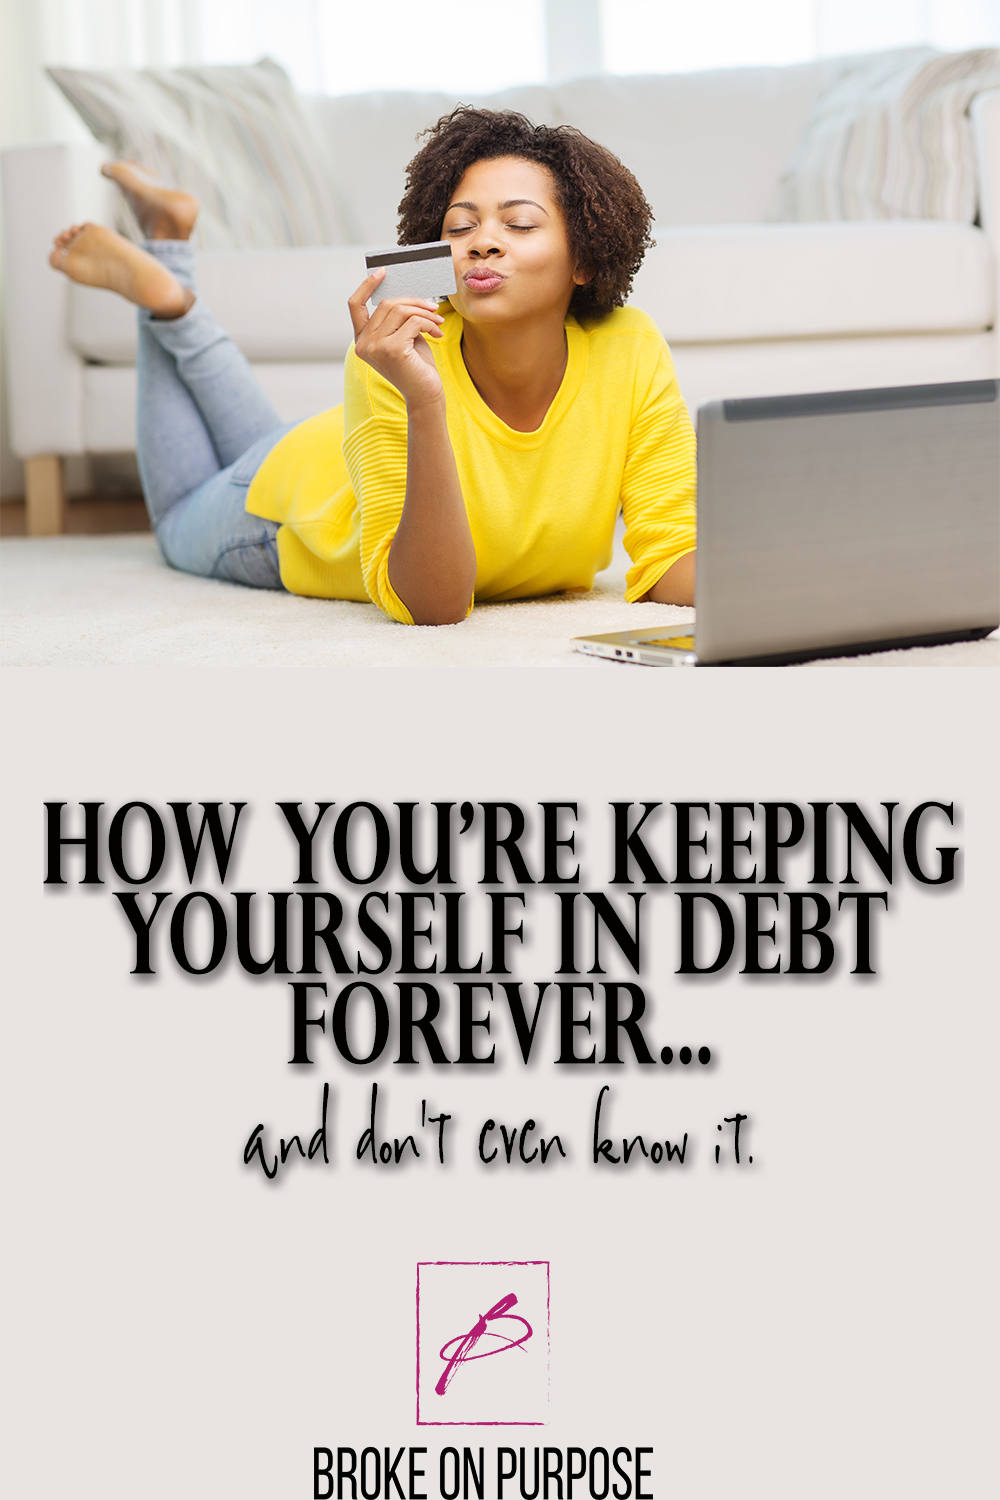 How you're keeping yourself in debt and don't even know it.